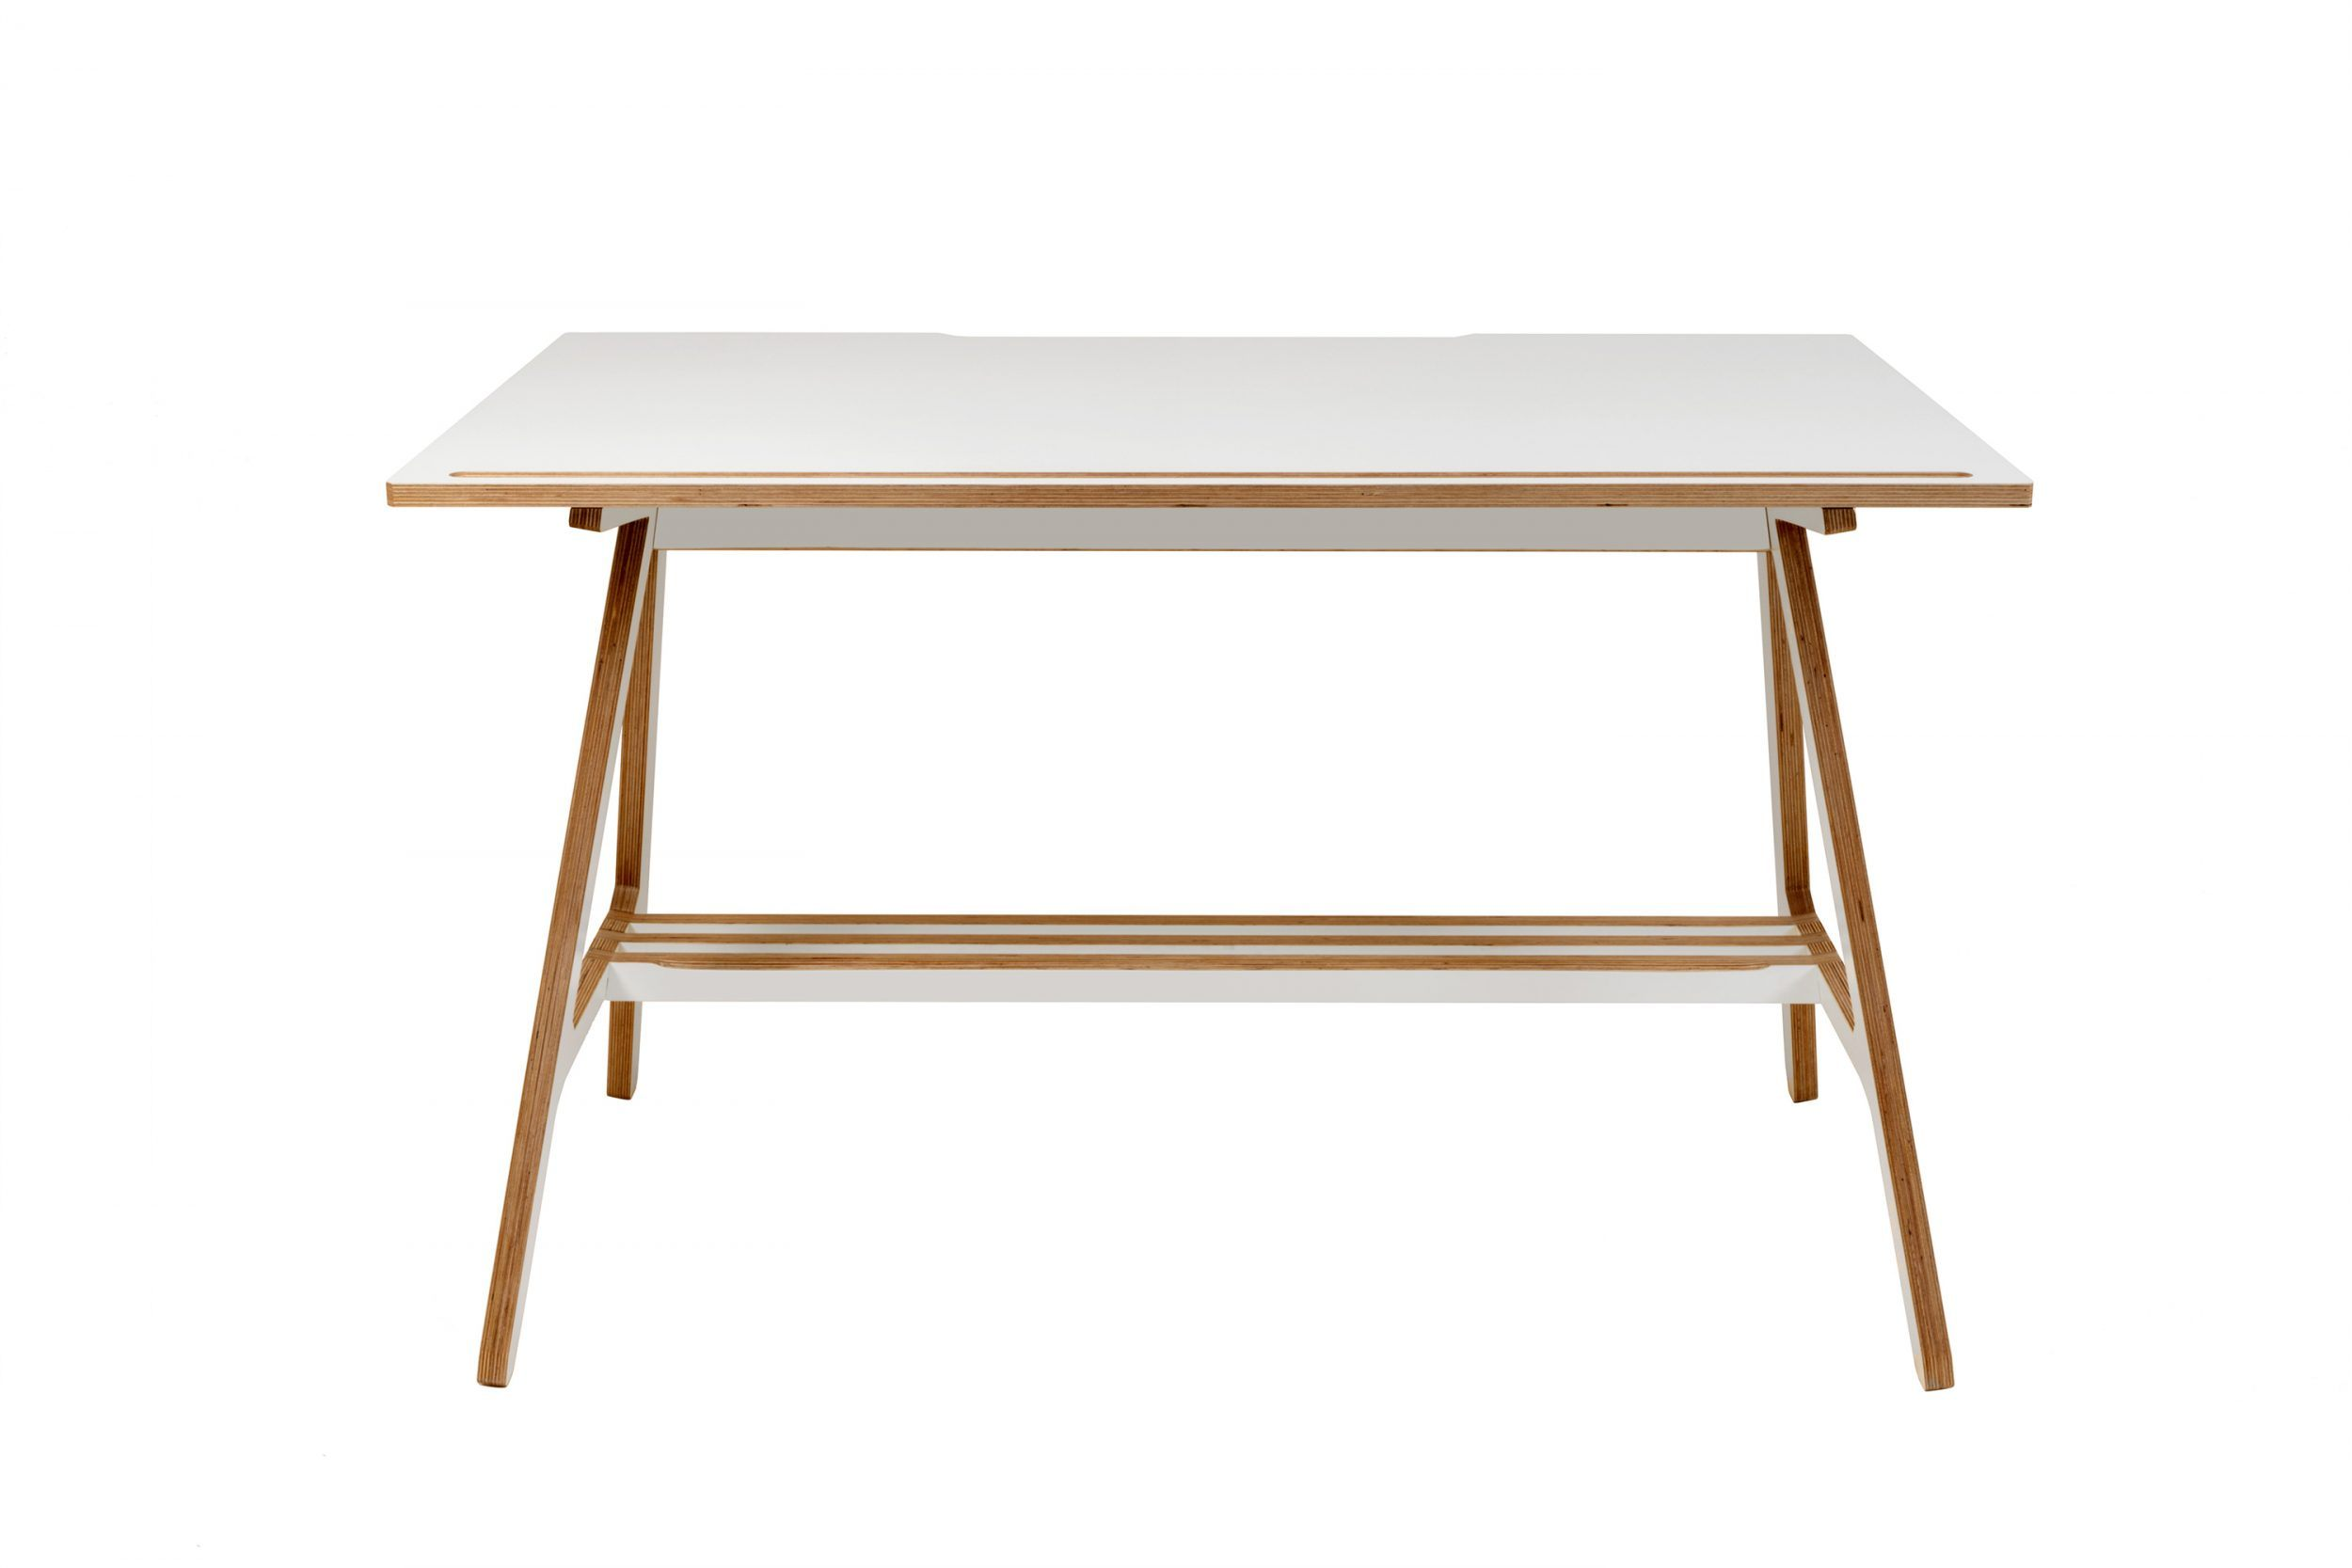 modern-wood-a-desk-white-byalex-005